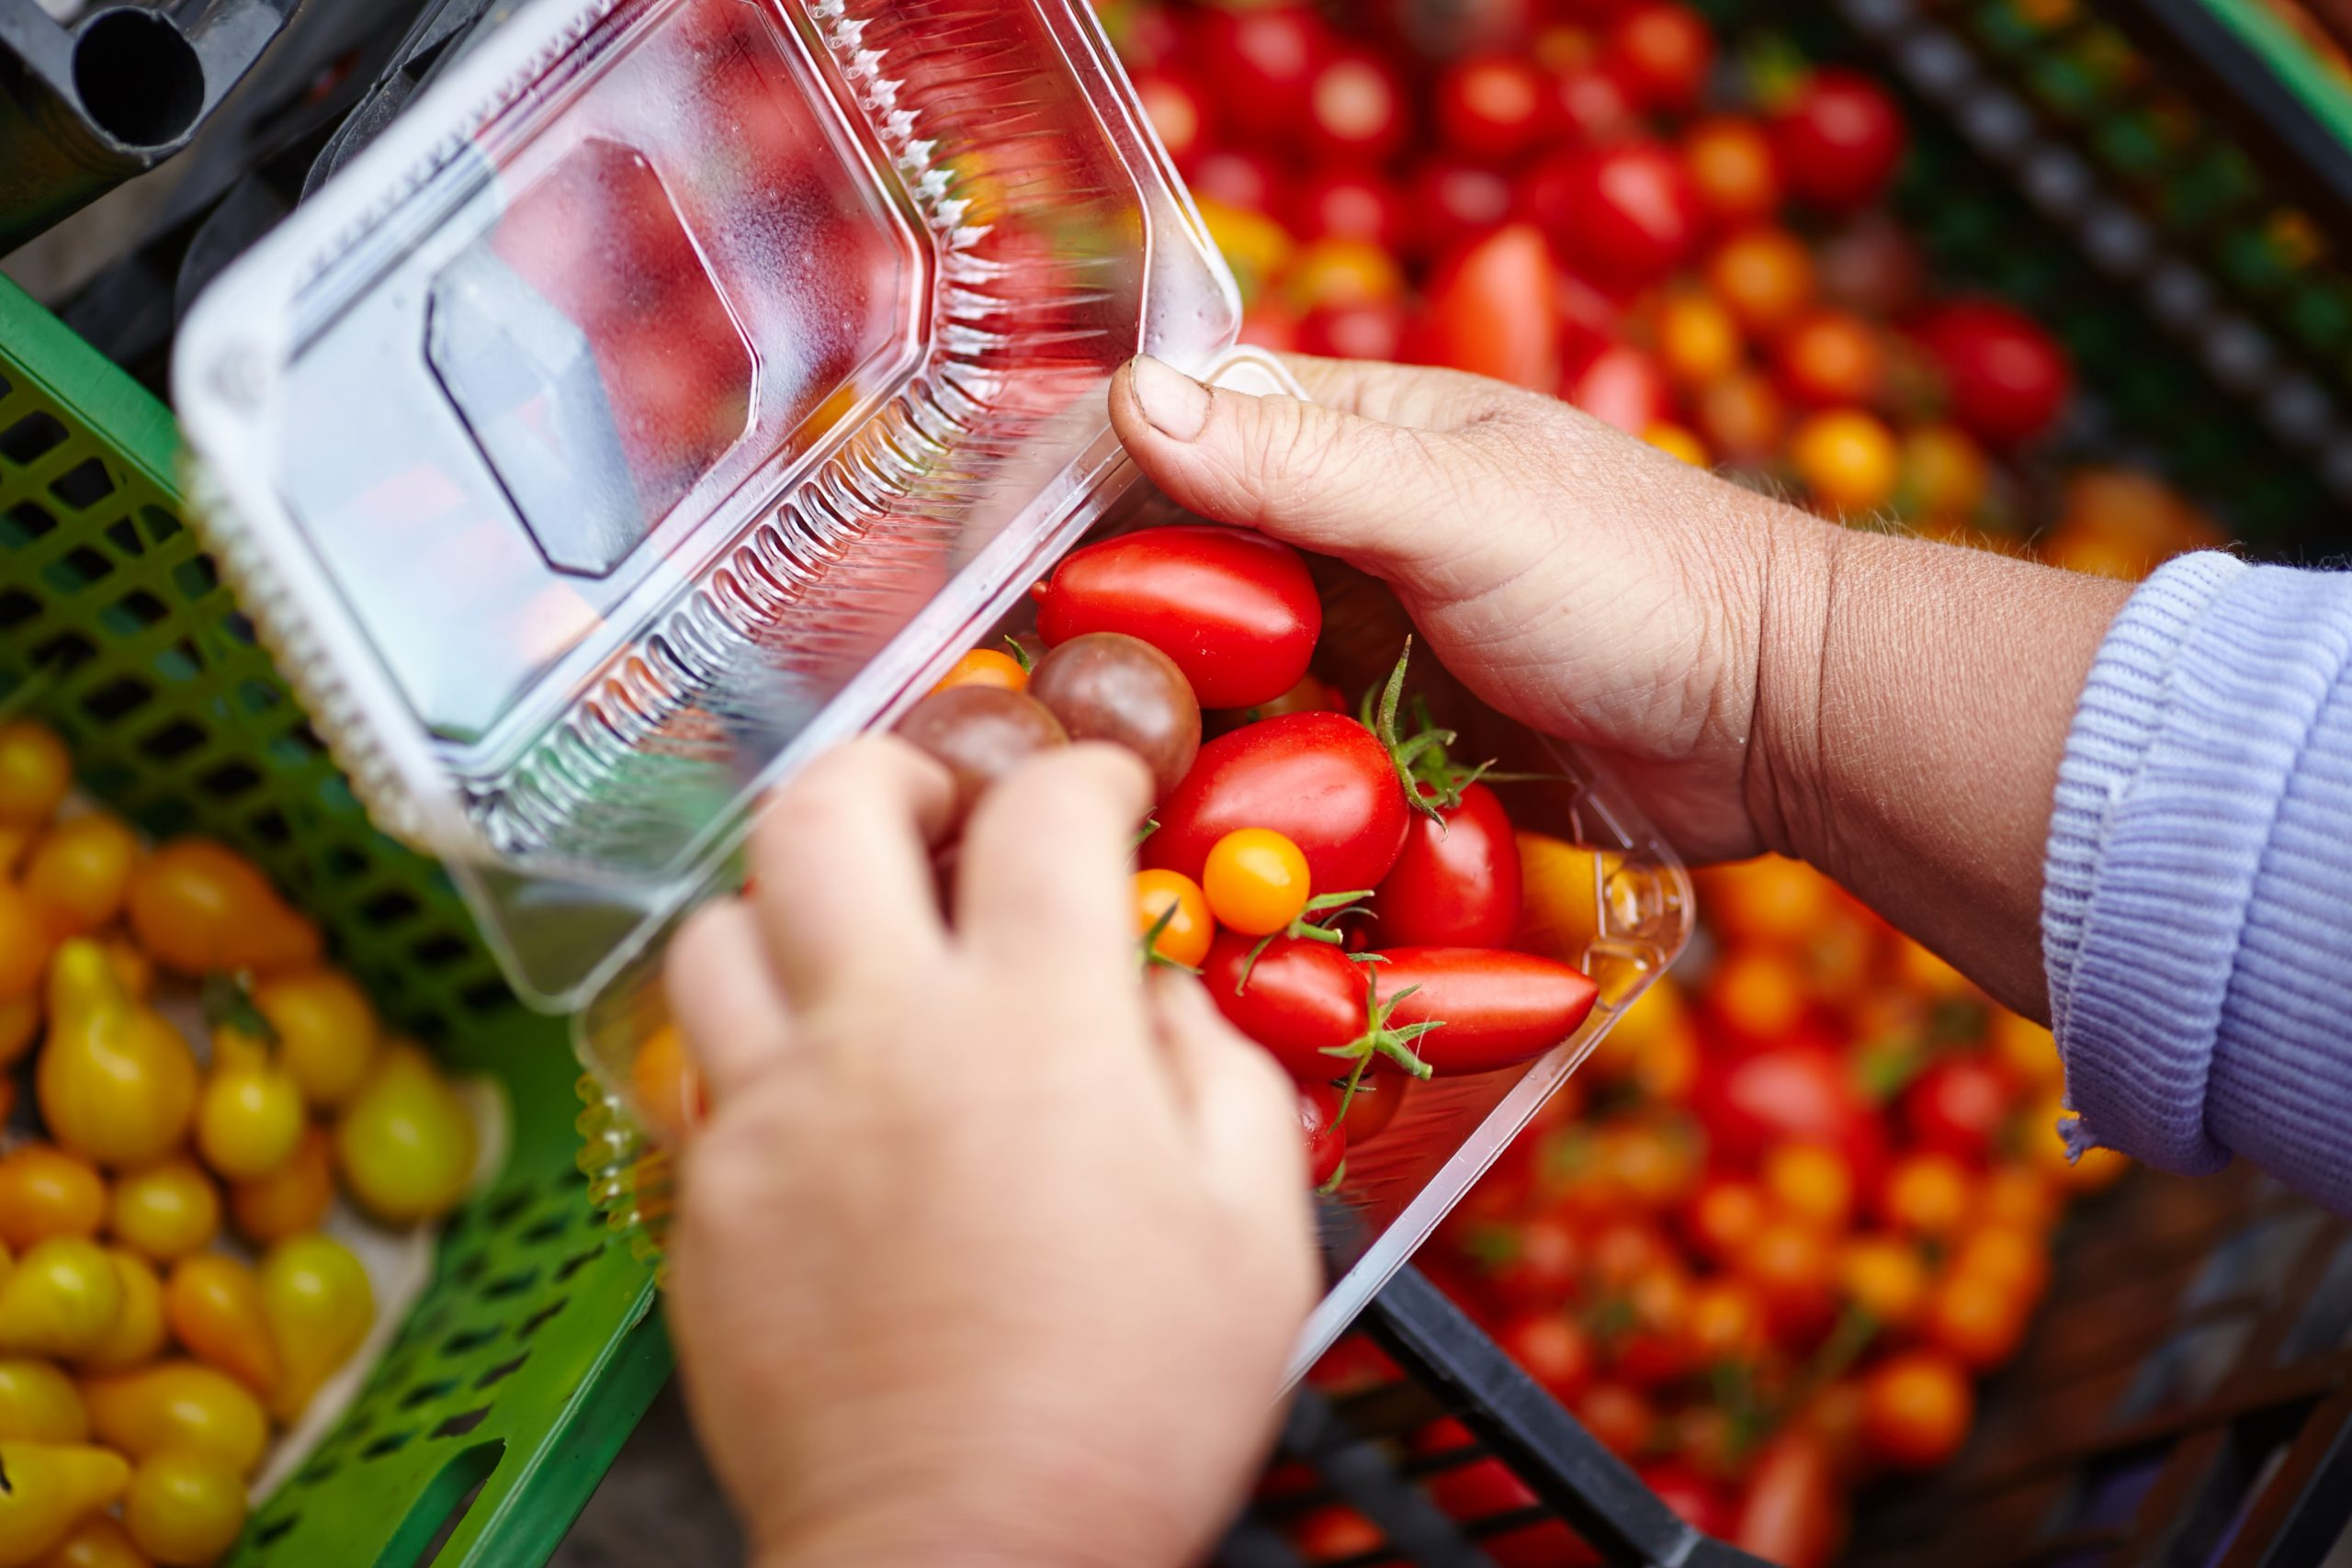 Edible Food Packaging will Prevent Waste in the Future